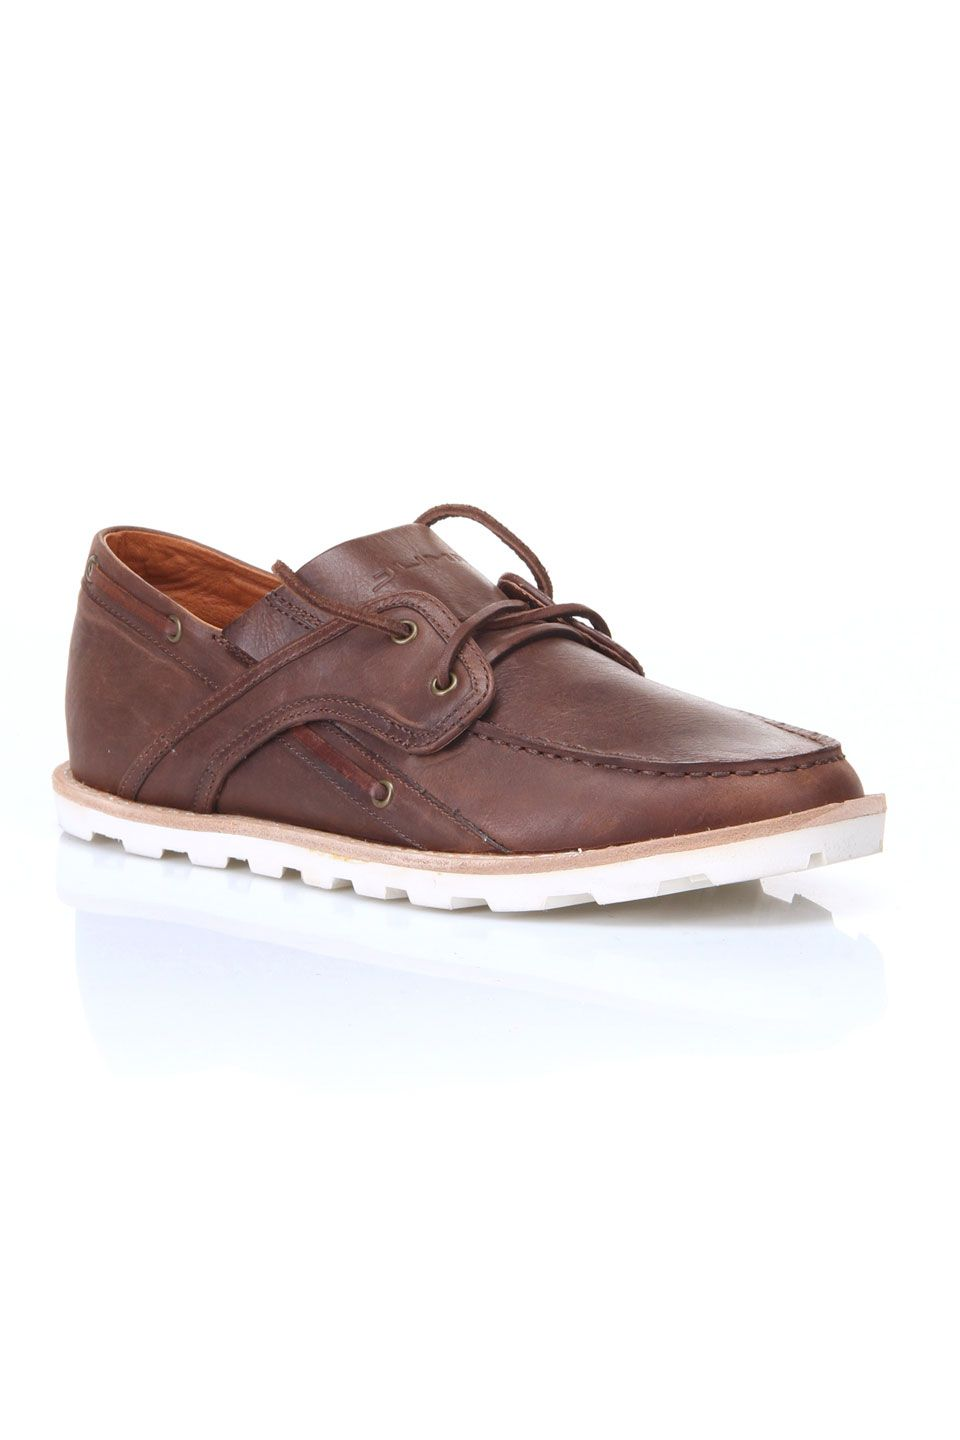 JUMP J75 Parlay LTD Boat shoes